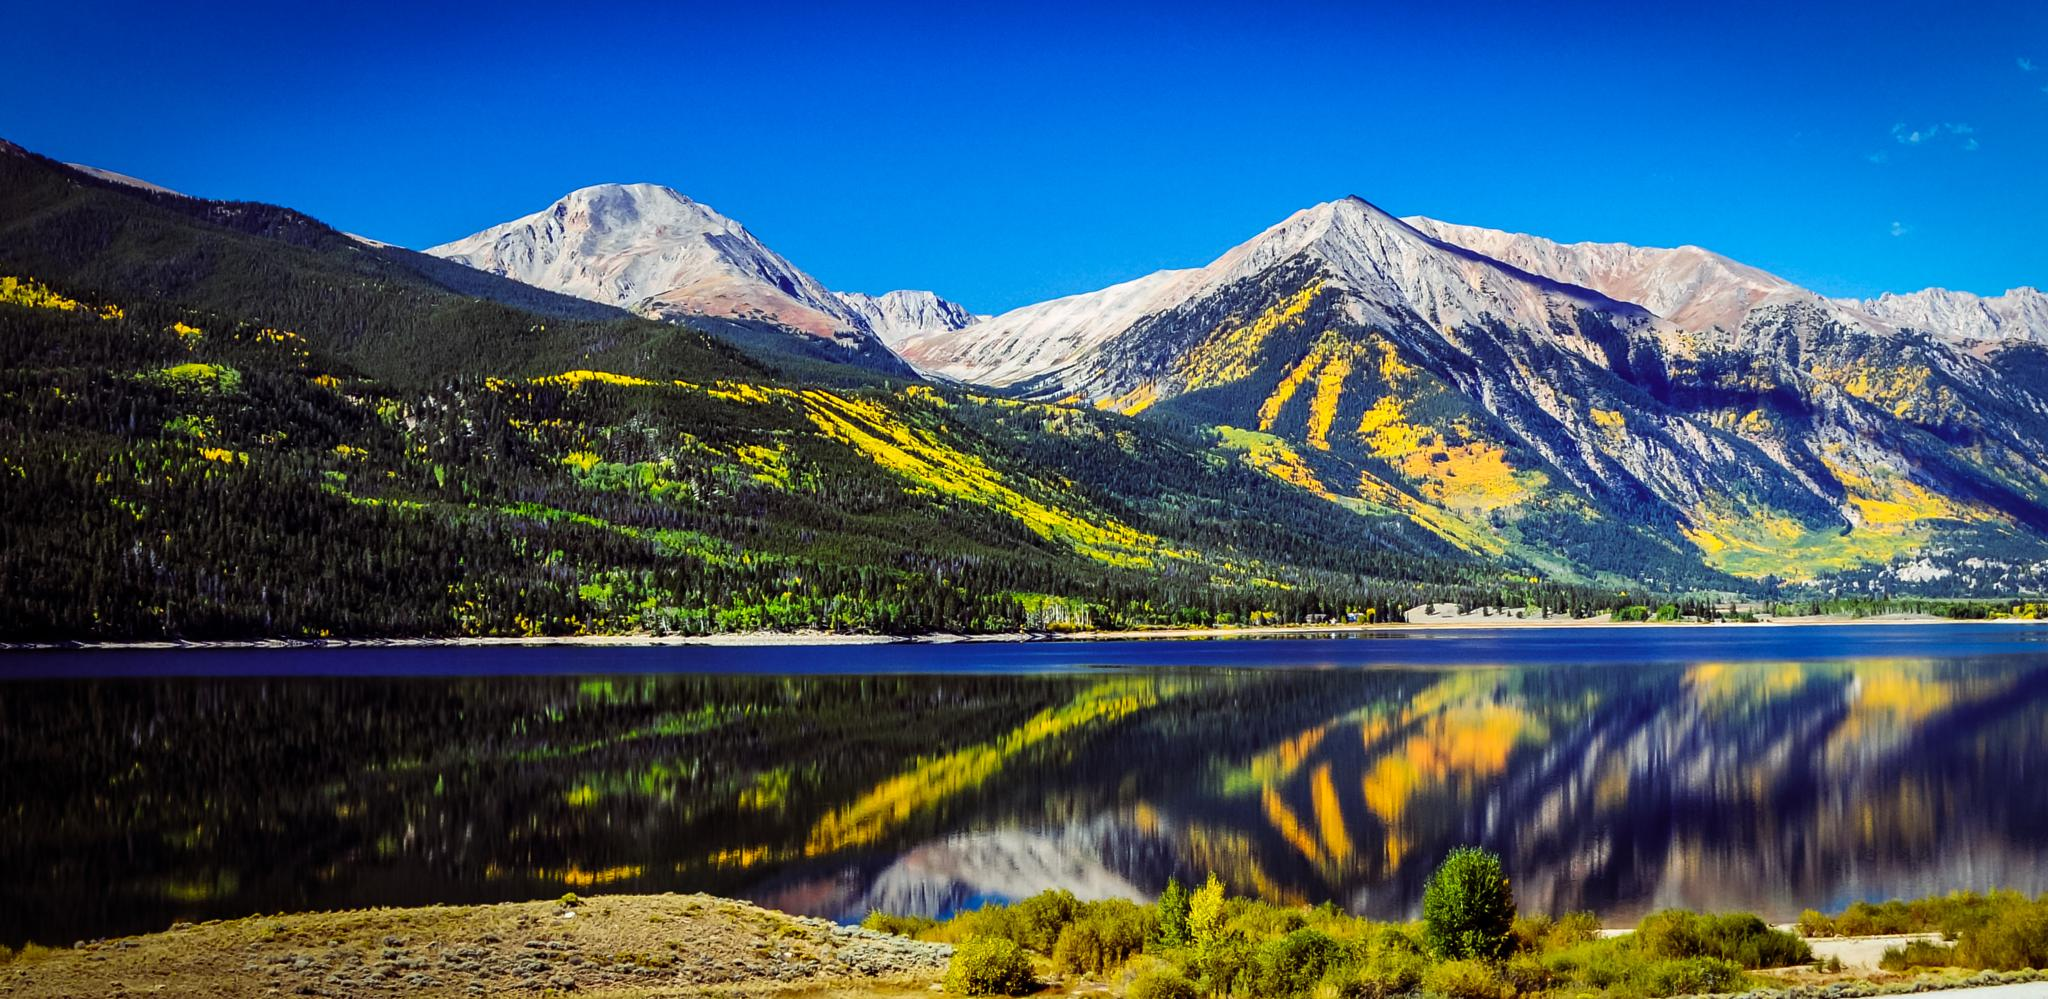 Twin Lakes by On A Walk Photography